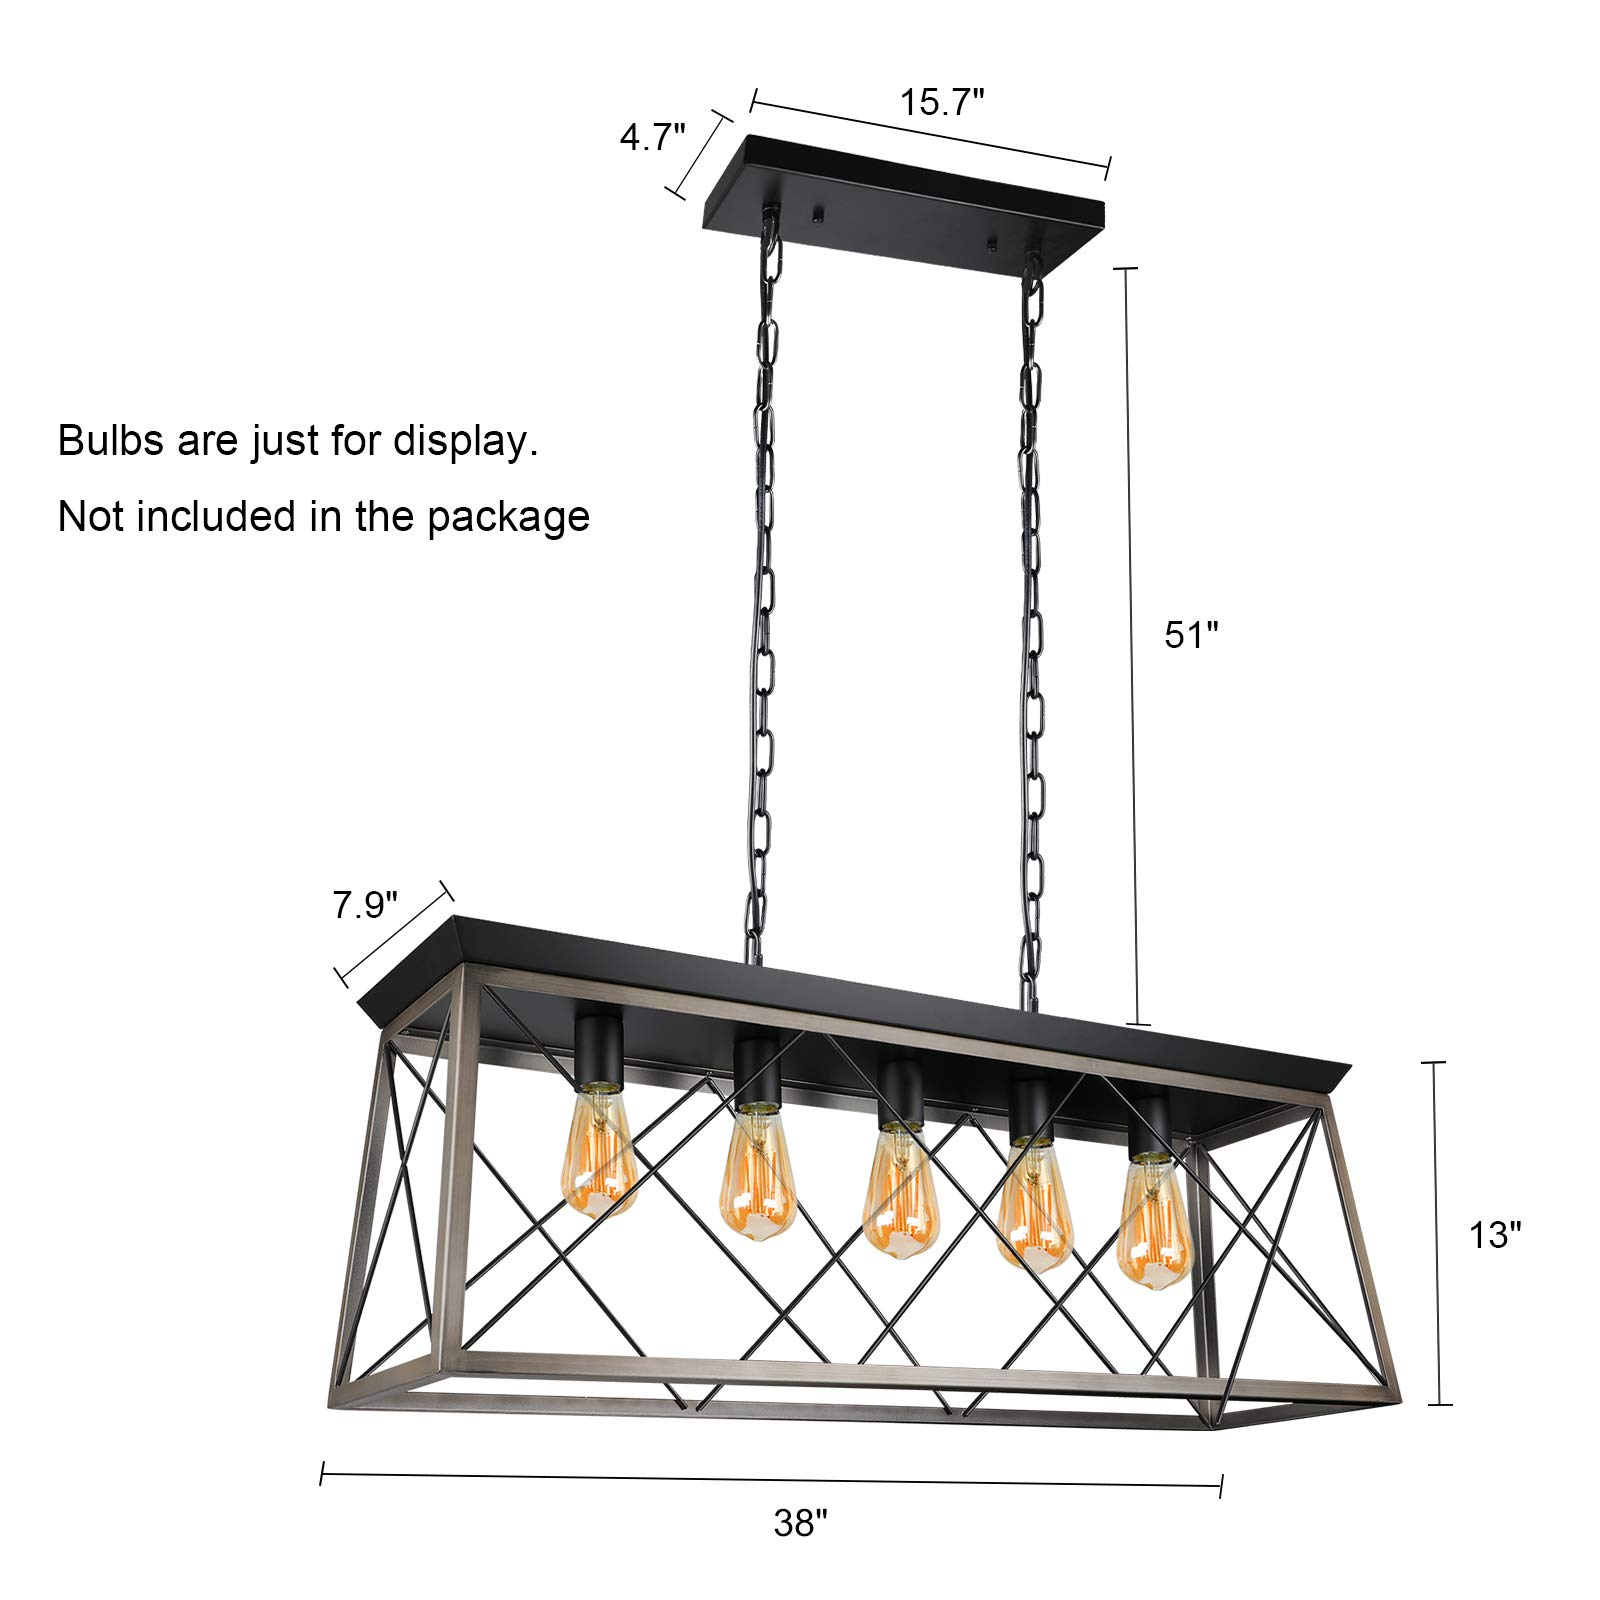 Paragon Home 5-Lights Rectangle Rustic Metal Pendant Light, Modern Linear Island Ceiling Lighting Fixture Industrial Pendant Lights for Dining Room Kitchen Living Room, E26 Base (Bulbs Not Included) by Paragon Home (Image #2)